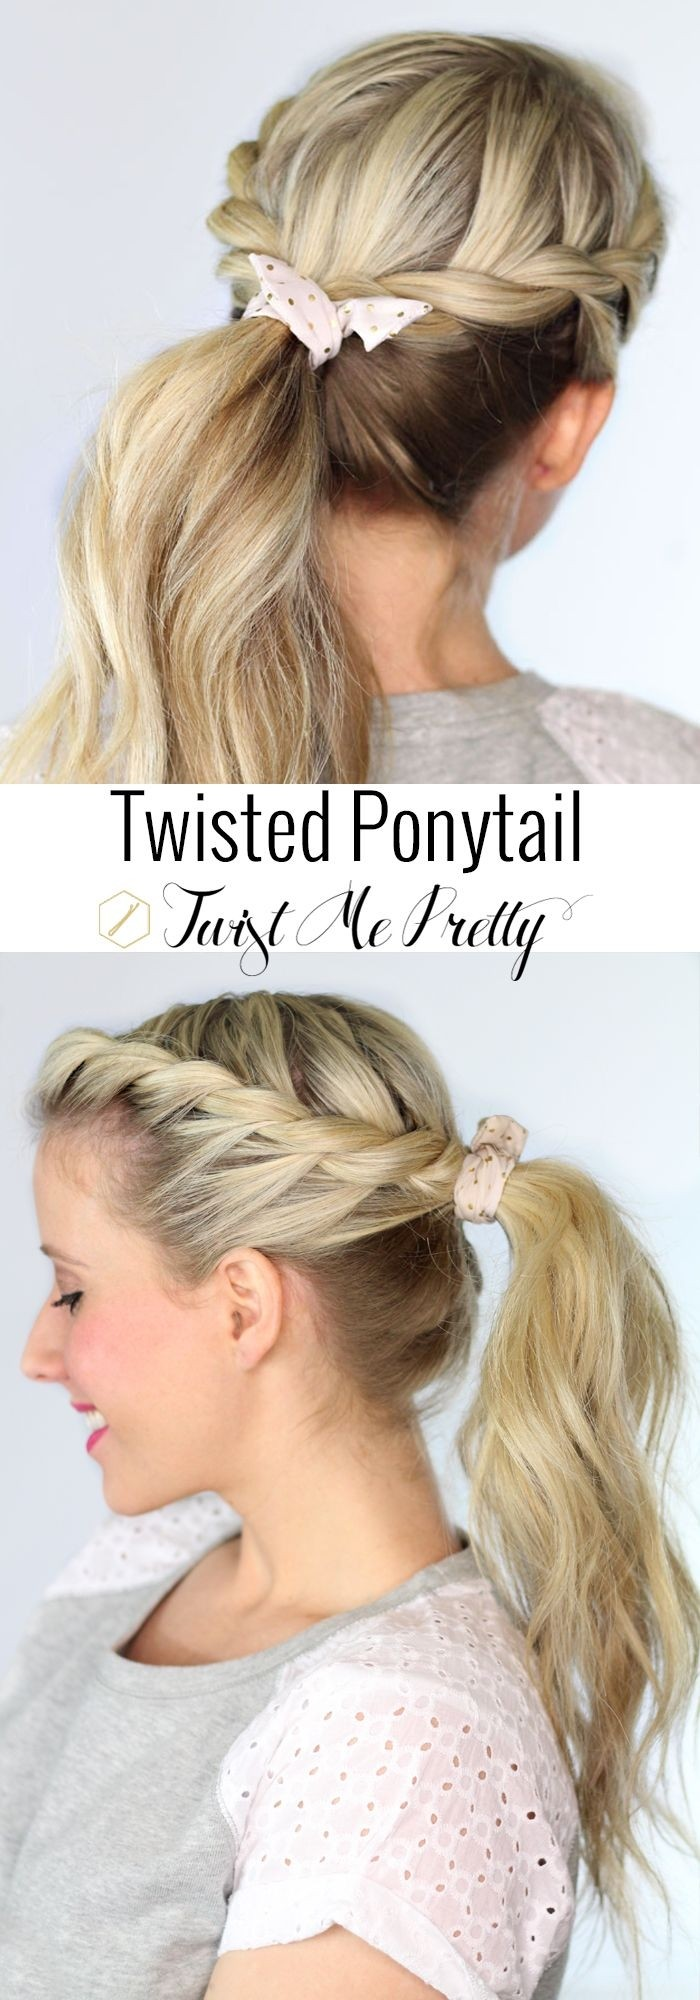 This Twisted Ponytail Hairstyle is So Fresh and Absolutely Perfect for Spring!